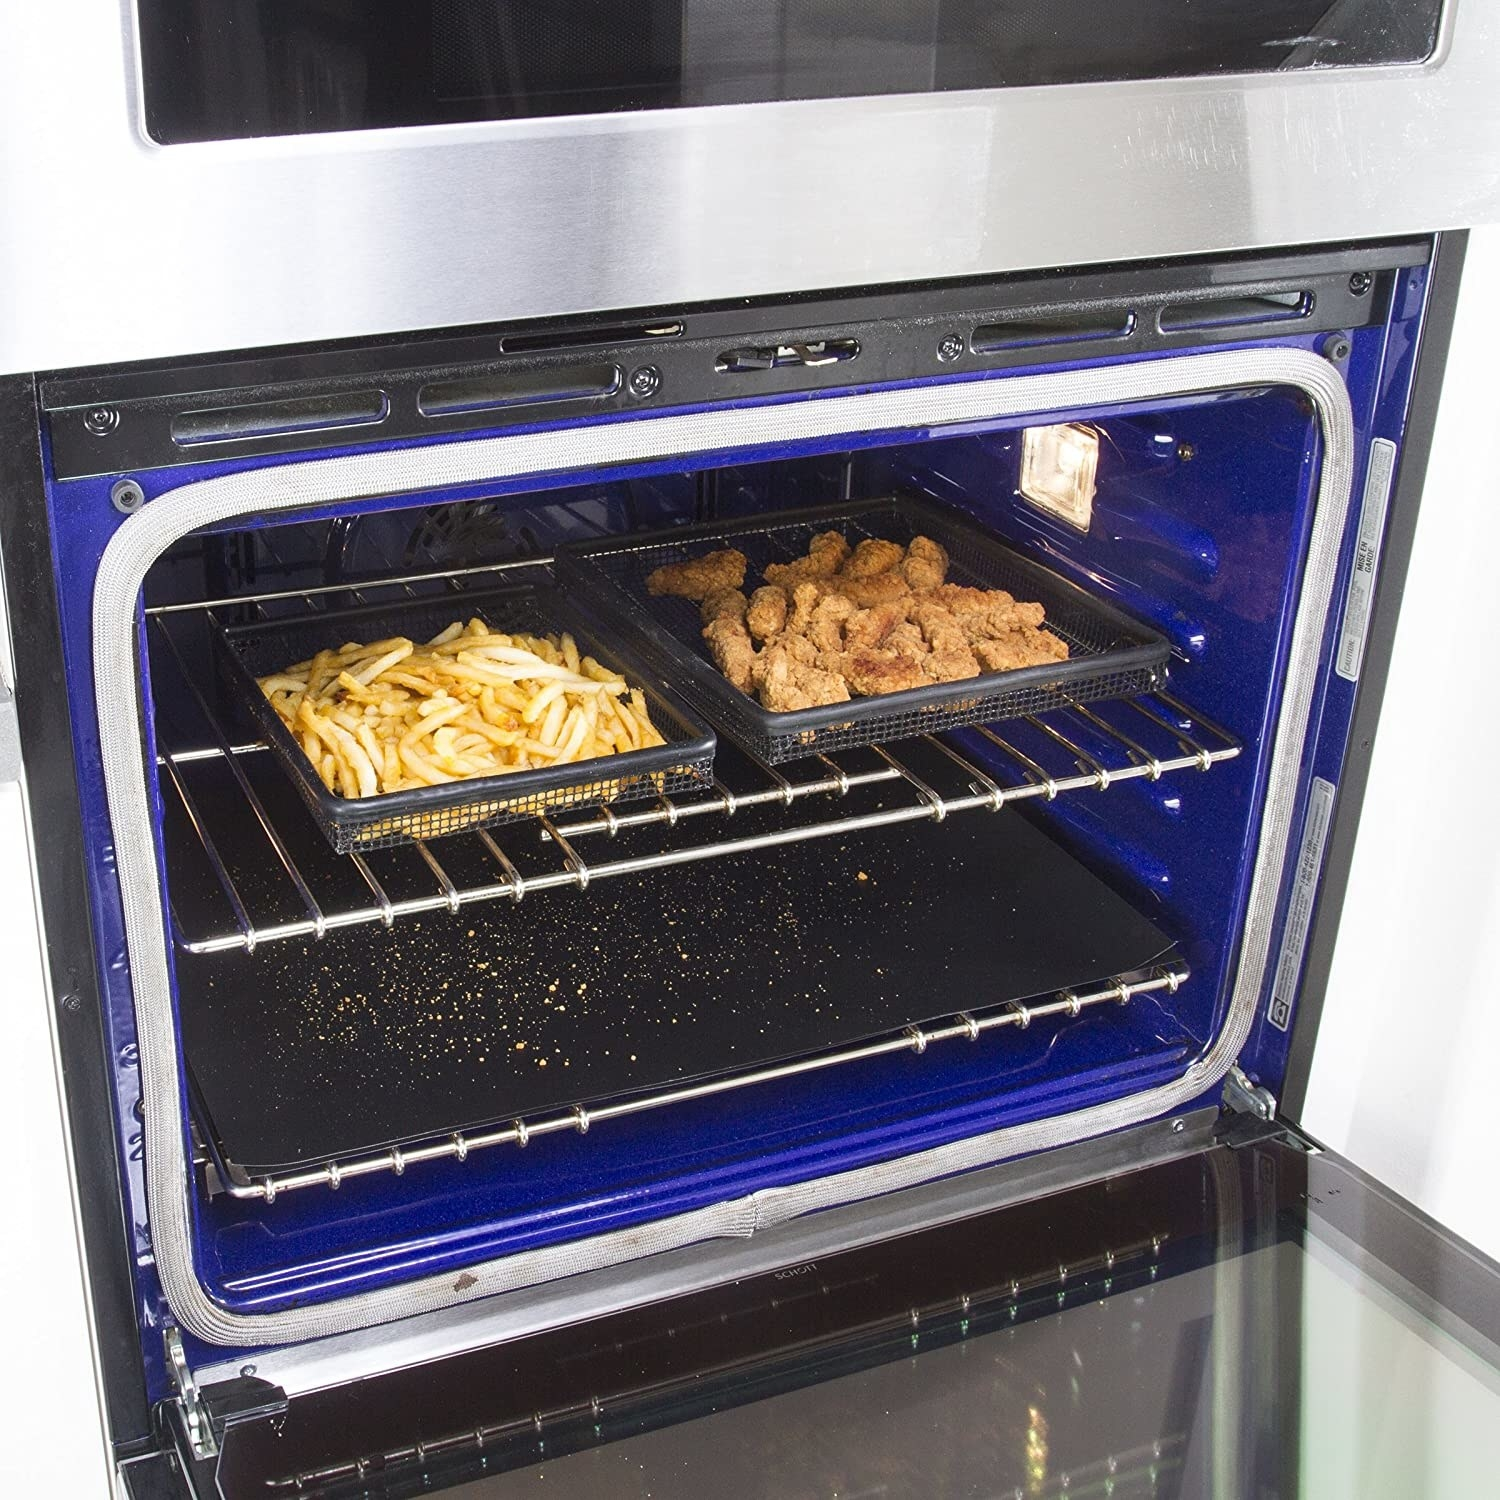 An oven with a large thick mat on the bottom rack